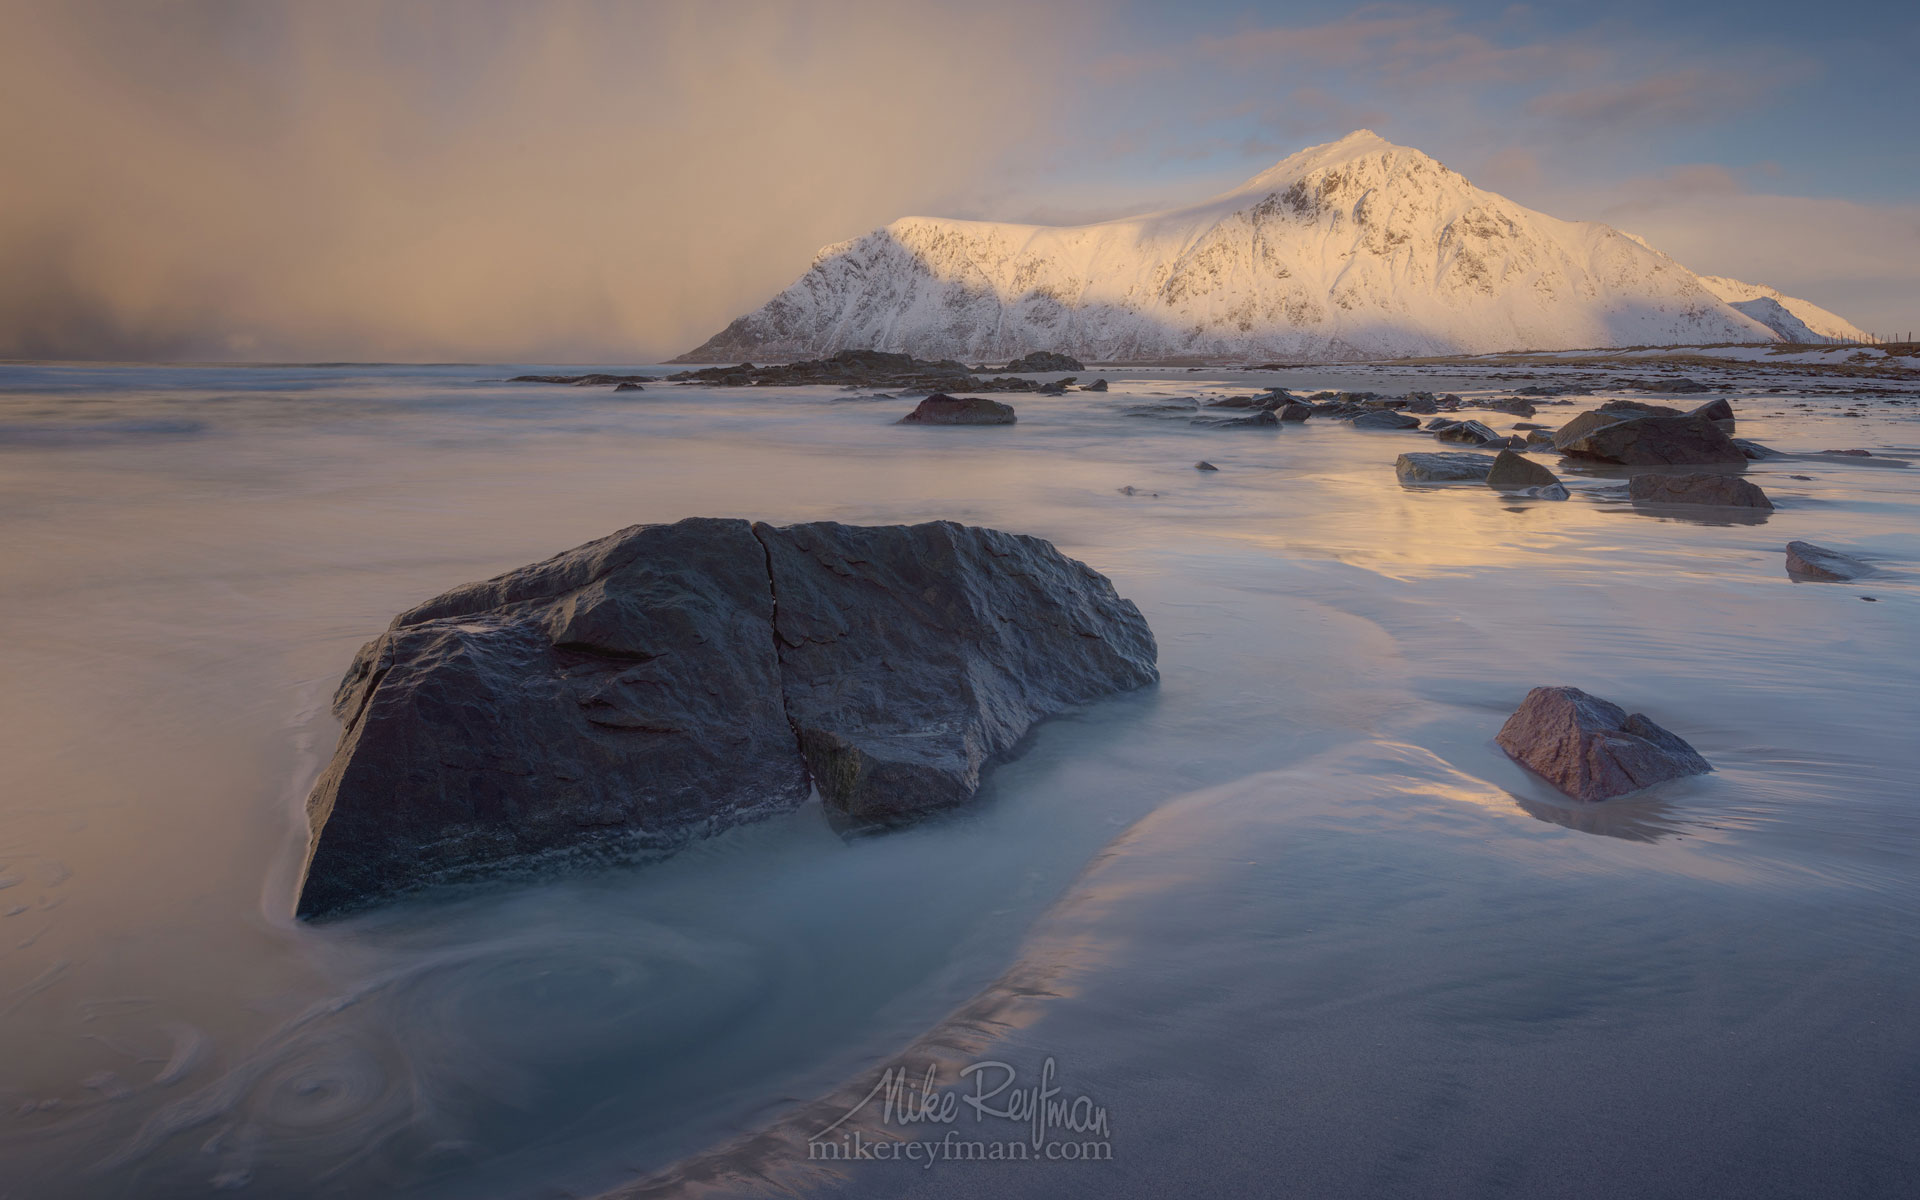 Afternoon at Skagsanden beach surrounded by snow covered mountains reflected in the cold sea, Flakstad, Lofoten Islands, Arctic, Norway, Scandinavia, Europe LF-MRD1E1136 - Lofoten Archipelago in Winter, Arctic Norway - Mike Reyfman Photography